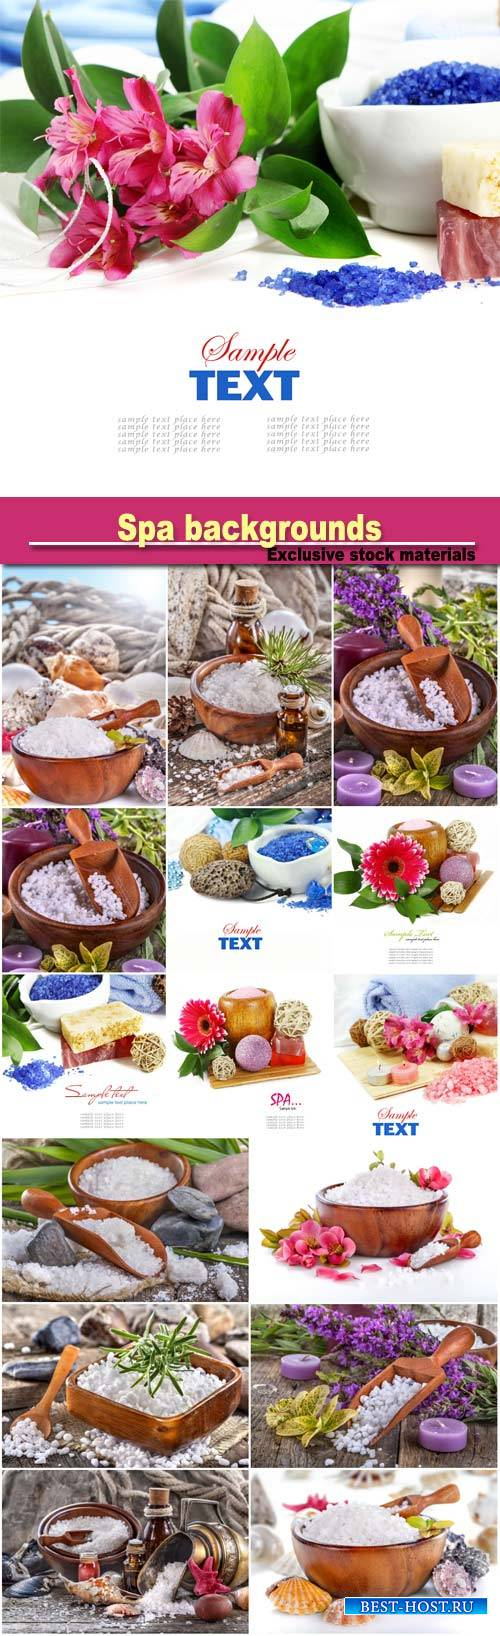 Spa backgrounds, salt bath in wooden spoon with flowers and  leaves in back ...